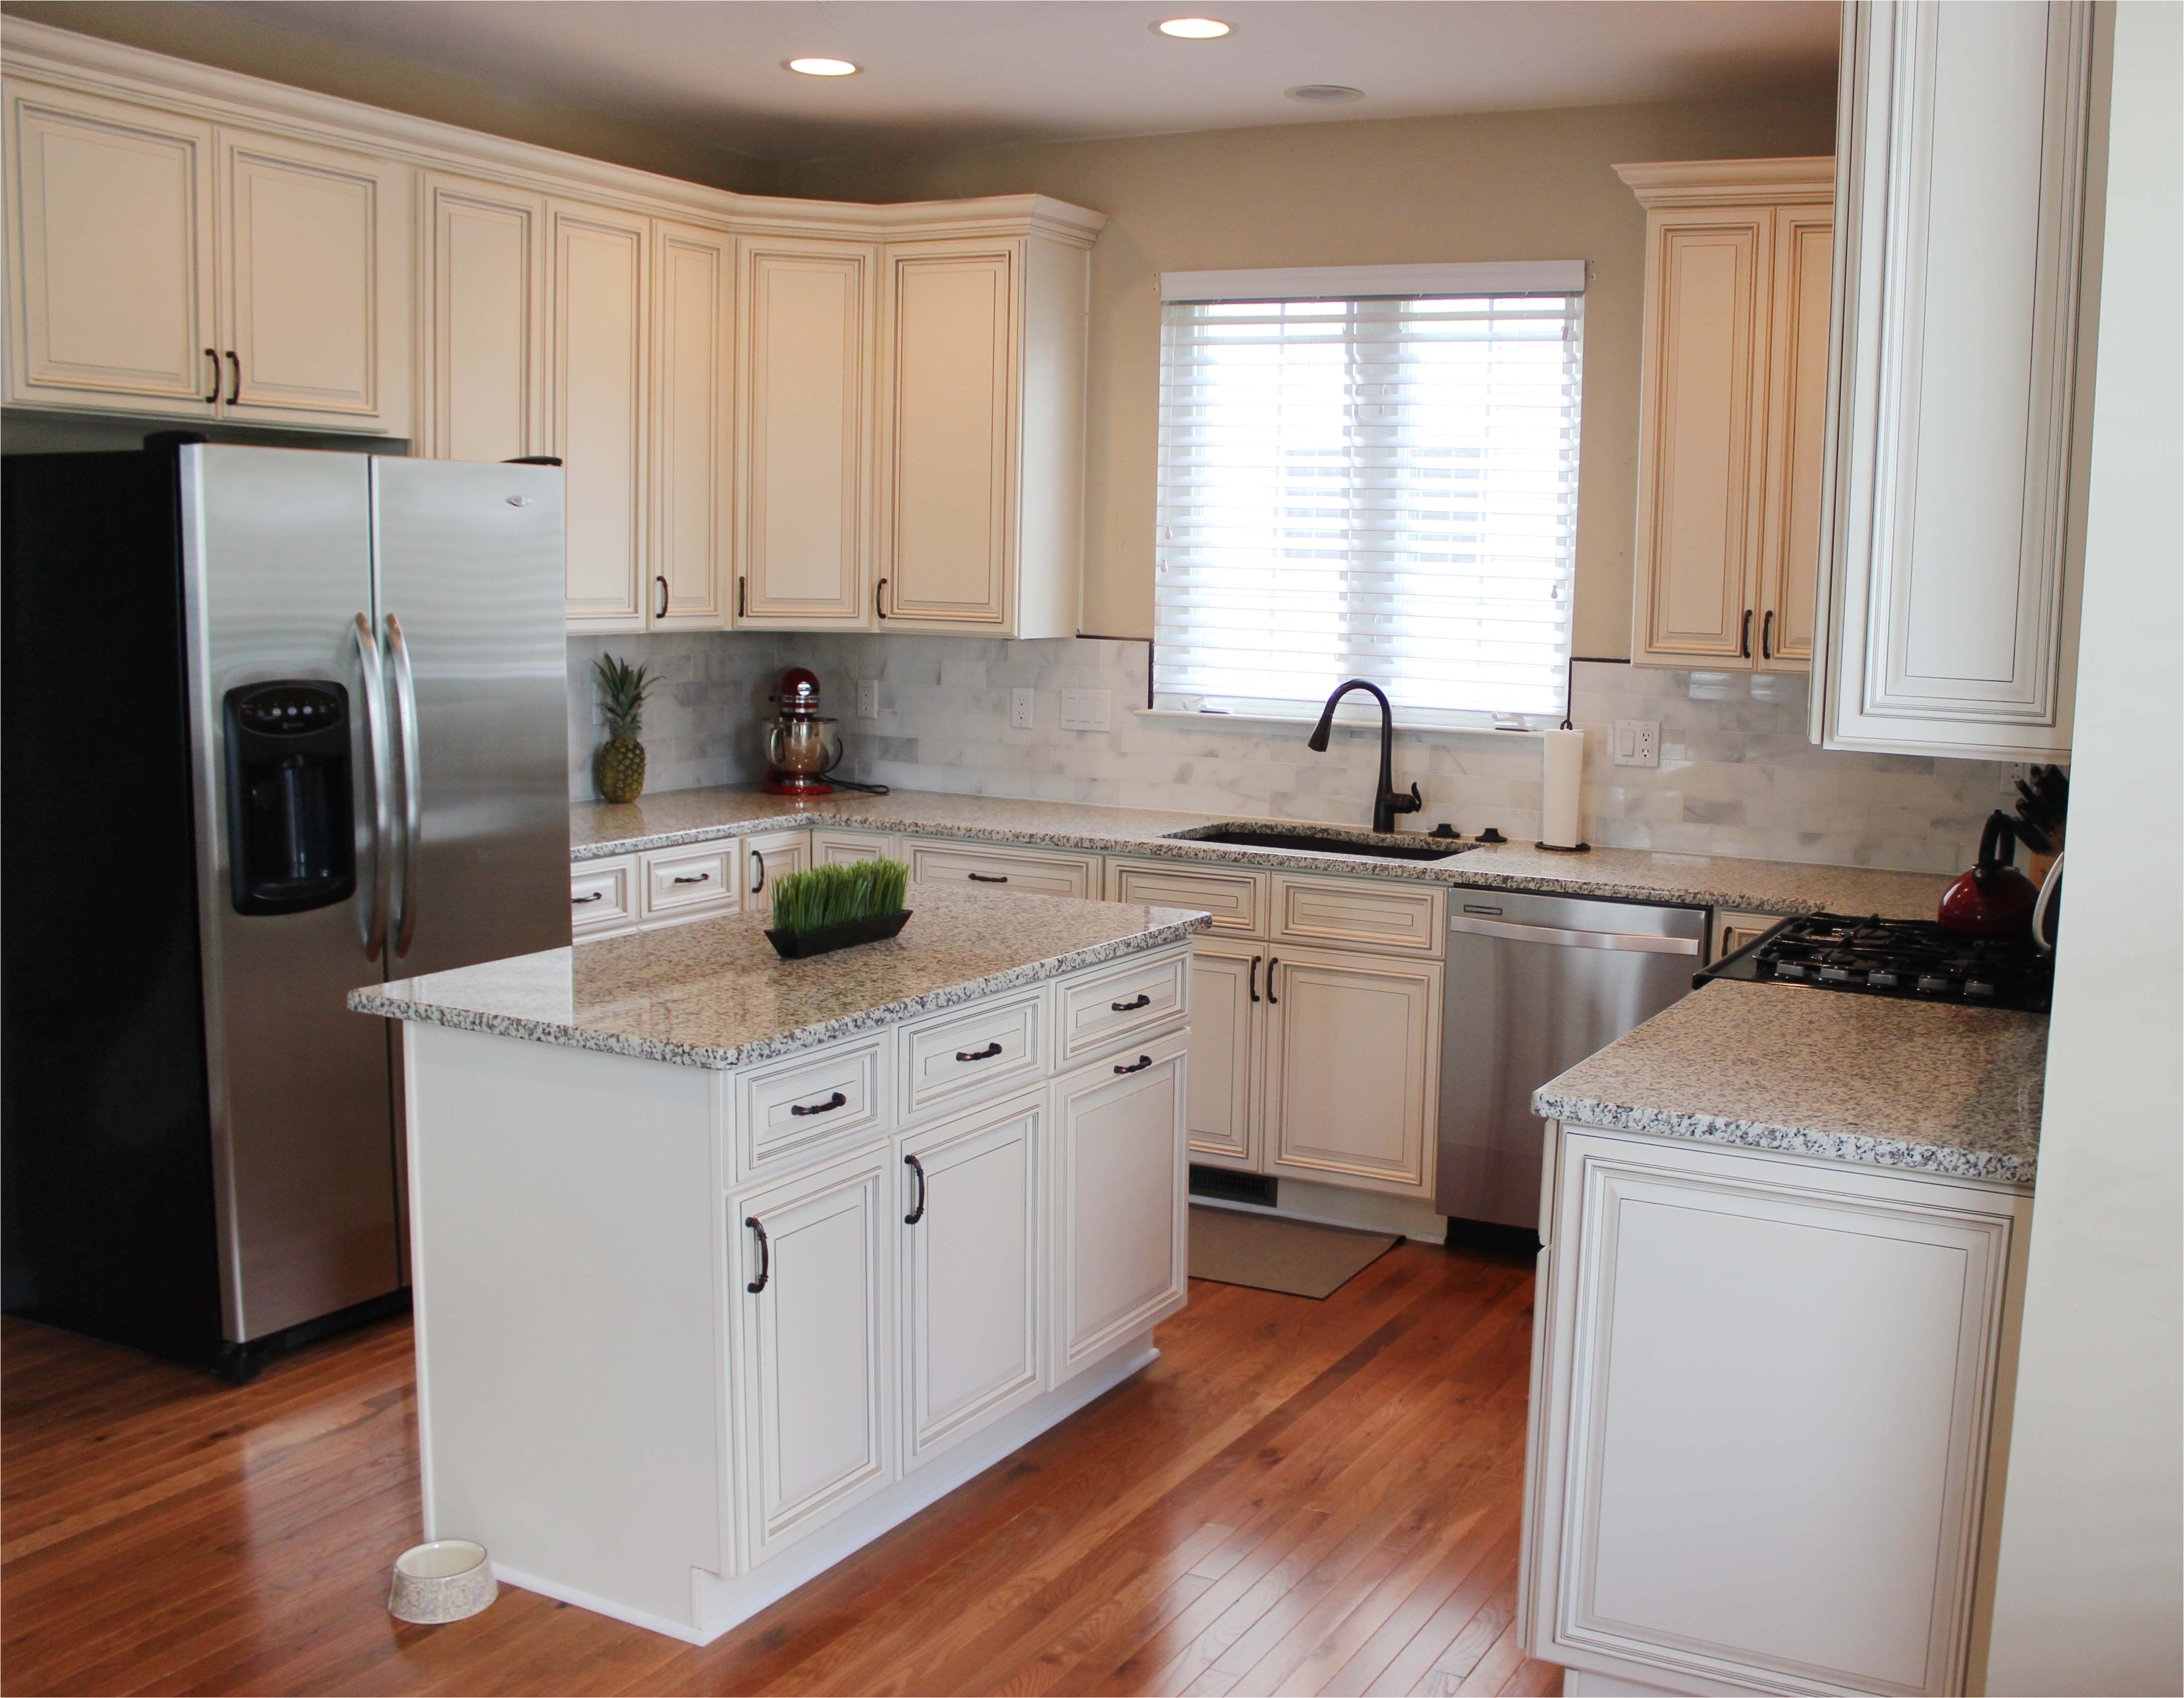 Forevermark Cabinetry Signature Pearl Inspirational forevermark Cabinets Vs Kraftmaid Decorating Ideas